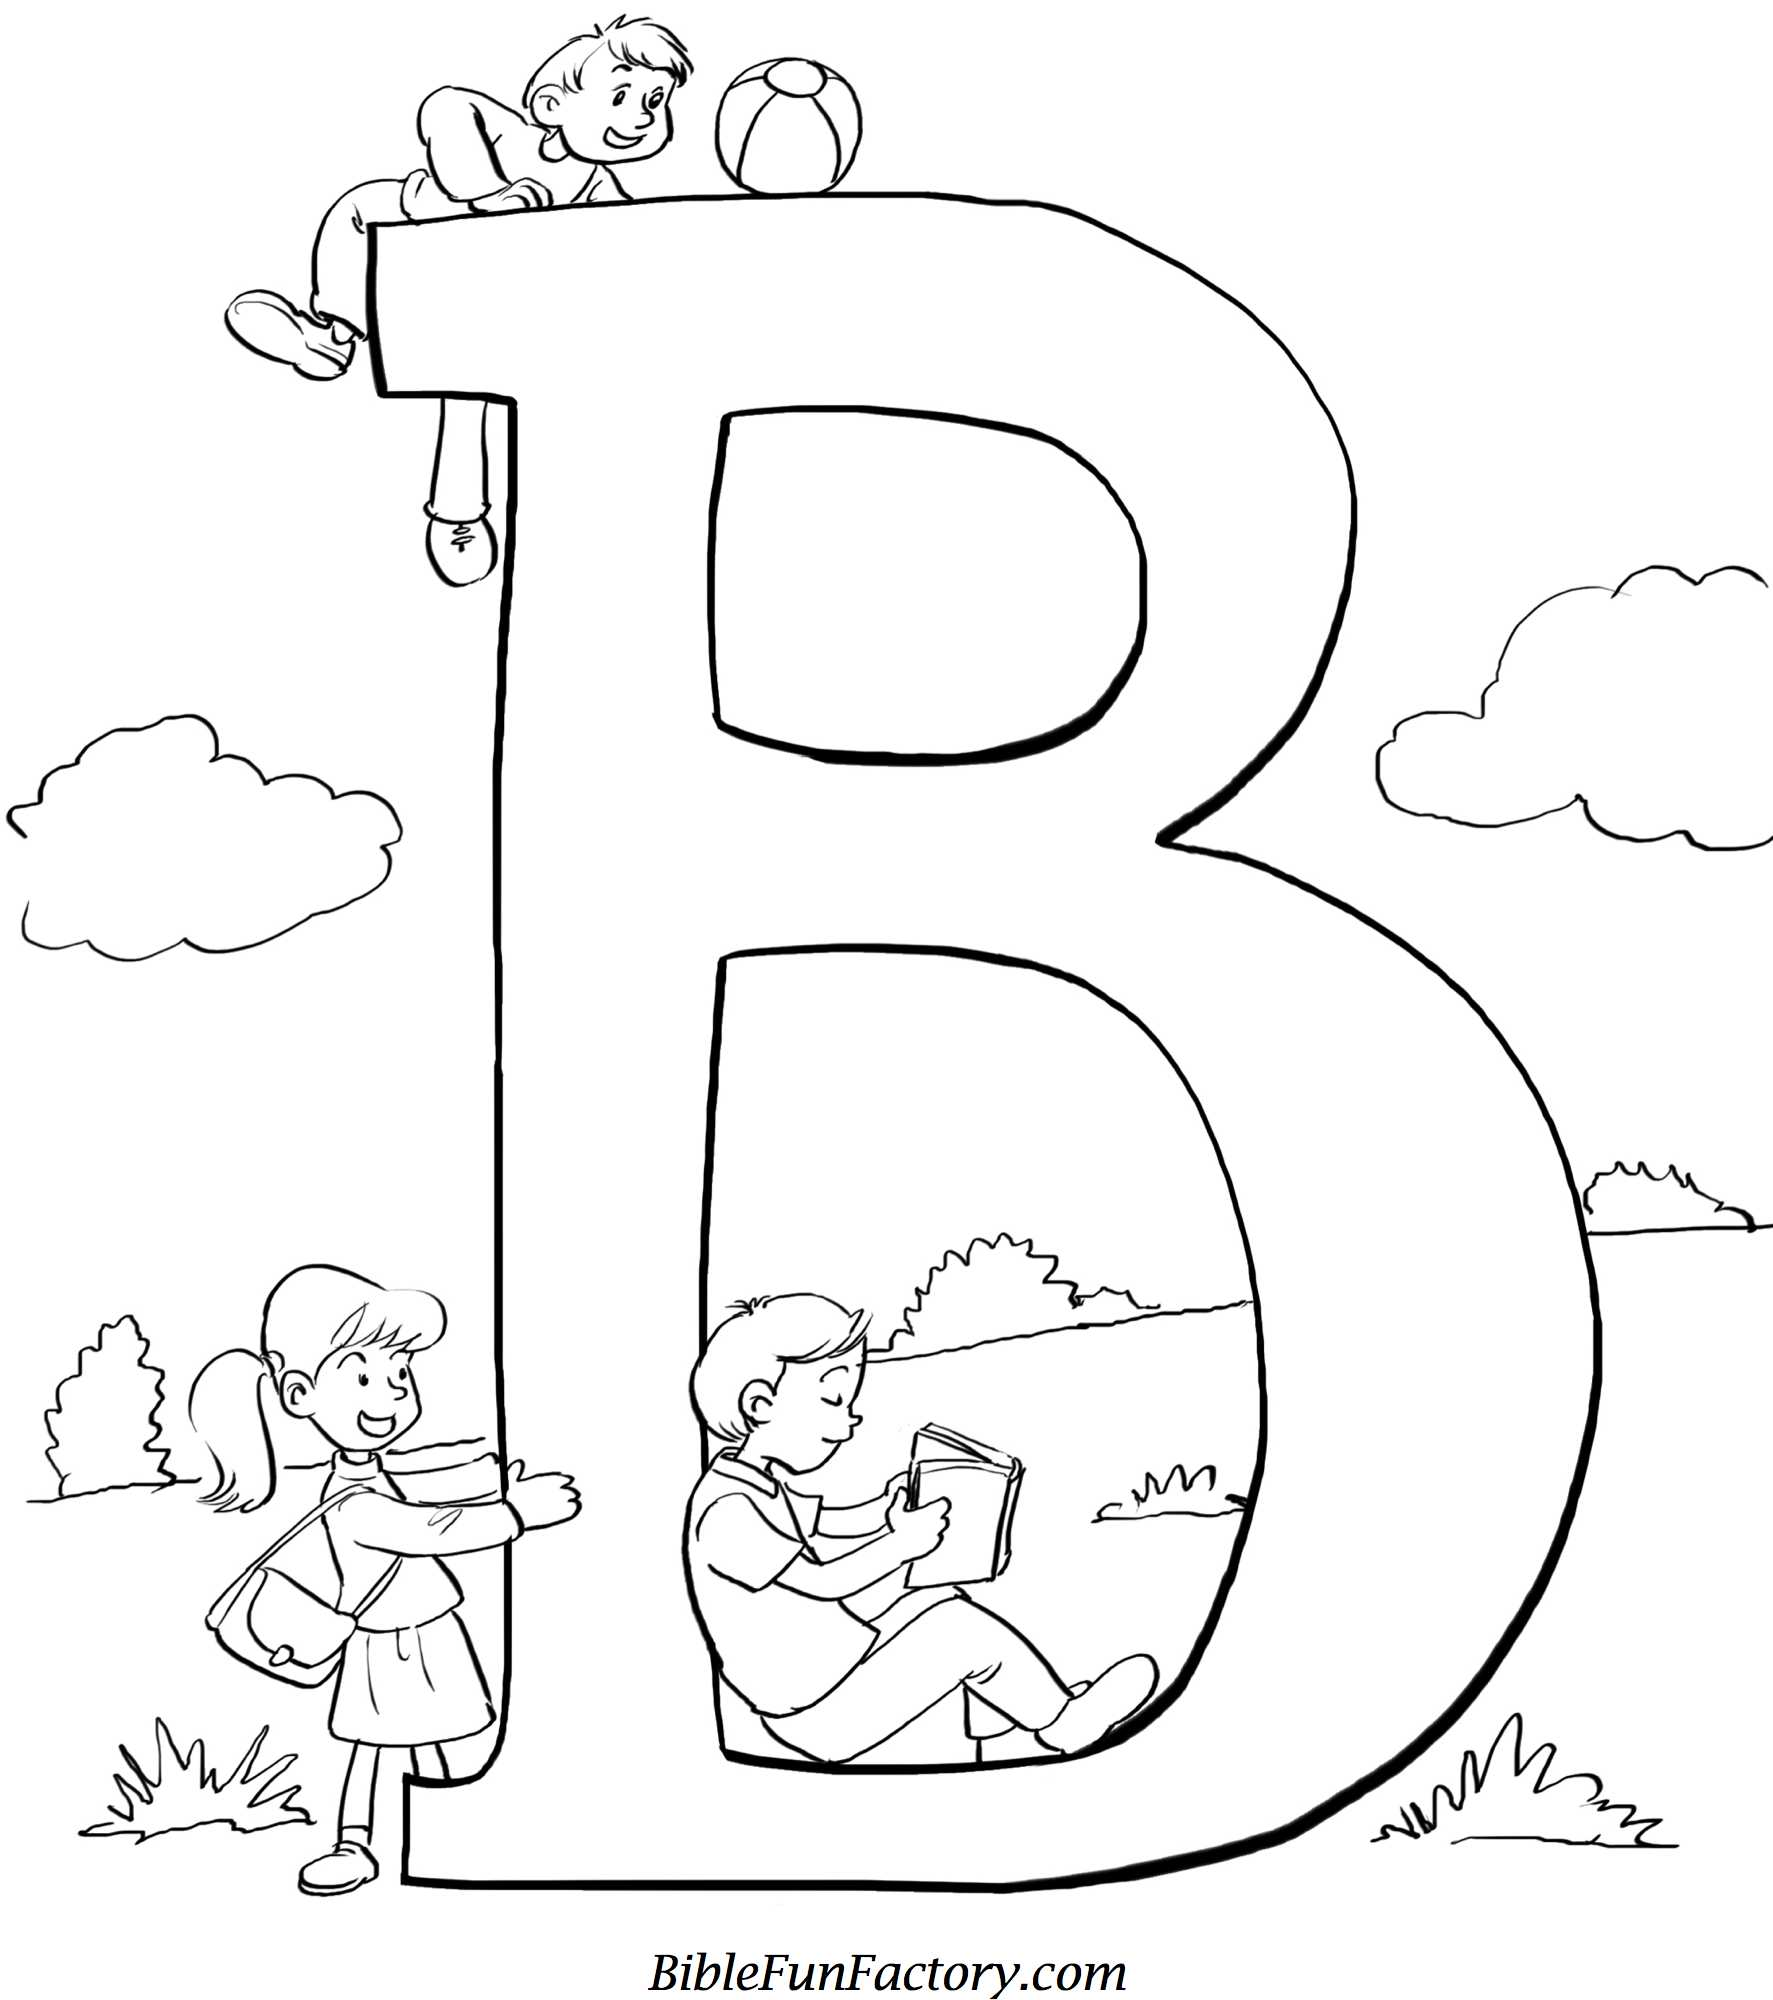 13 Best Images Of Bible Worksheets For Preschoolers